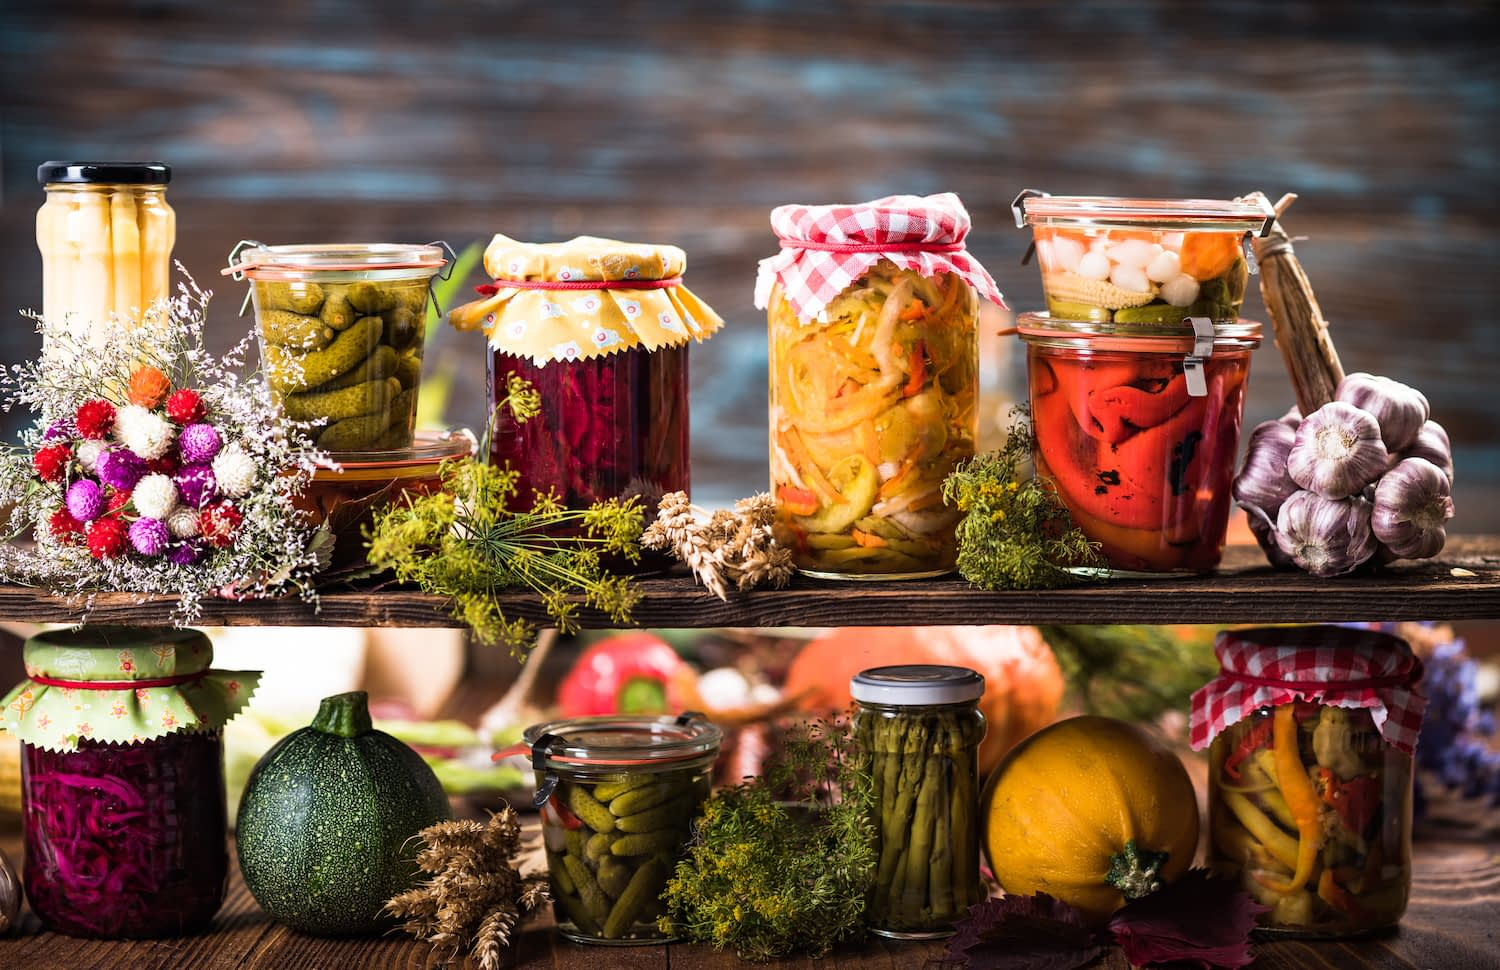 Jars of fermented foods on wooden table with pickles, kimchi, asparagus, peppers and other vegetables.